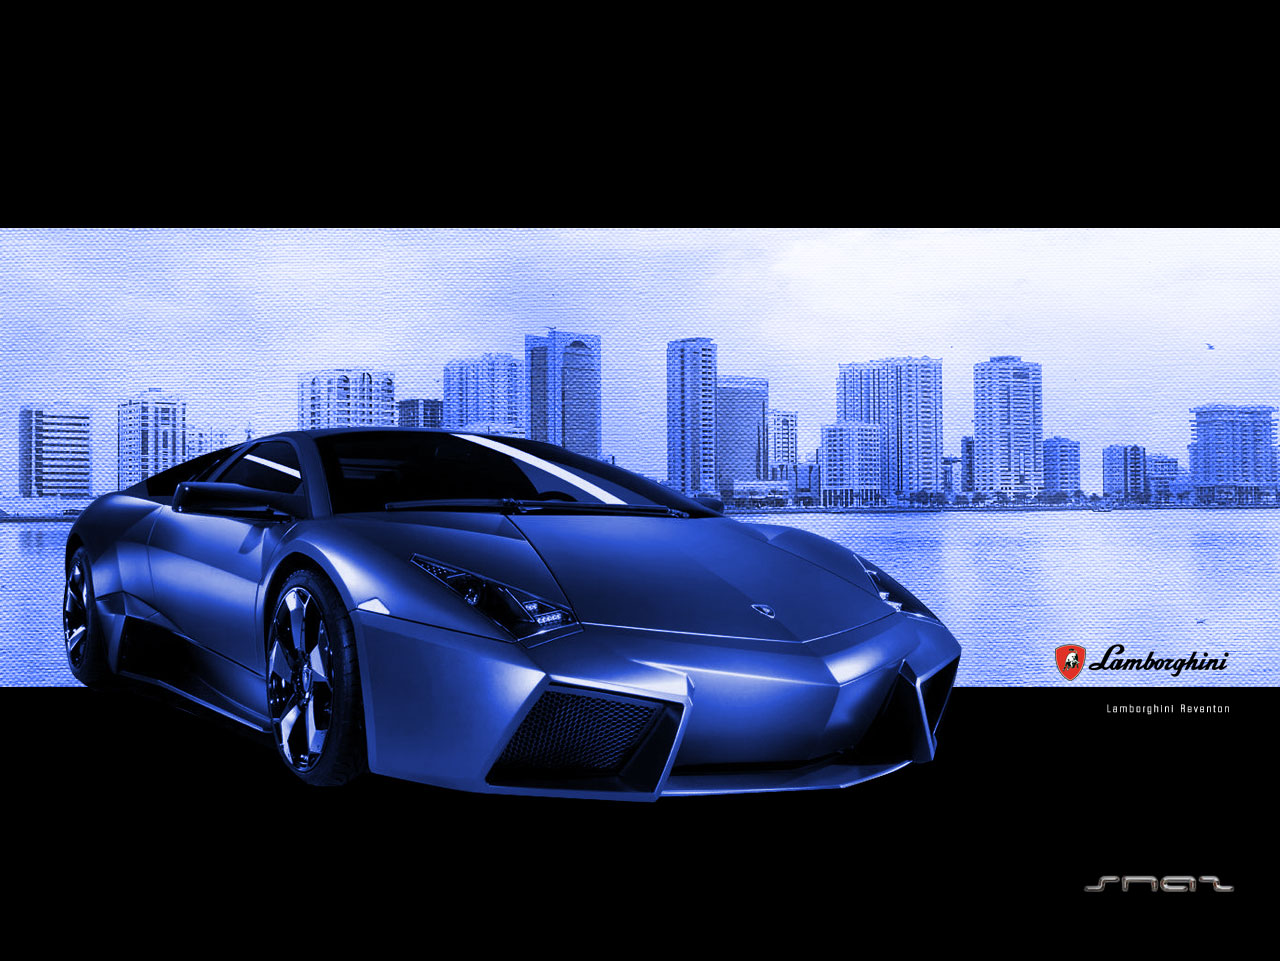 lamborghini car wallpapers lamborghini car wallpapers lamborghini car 764